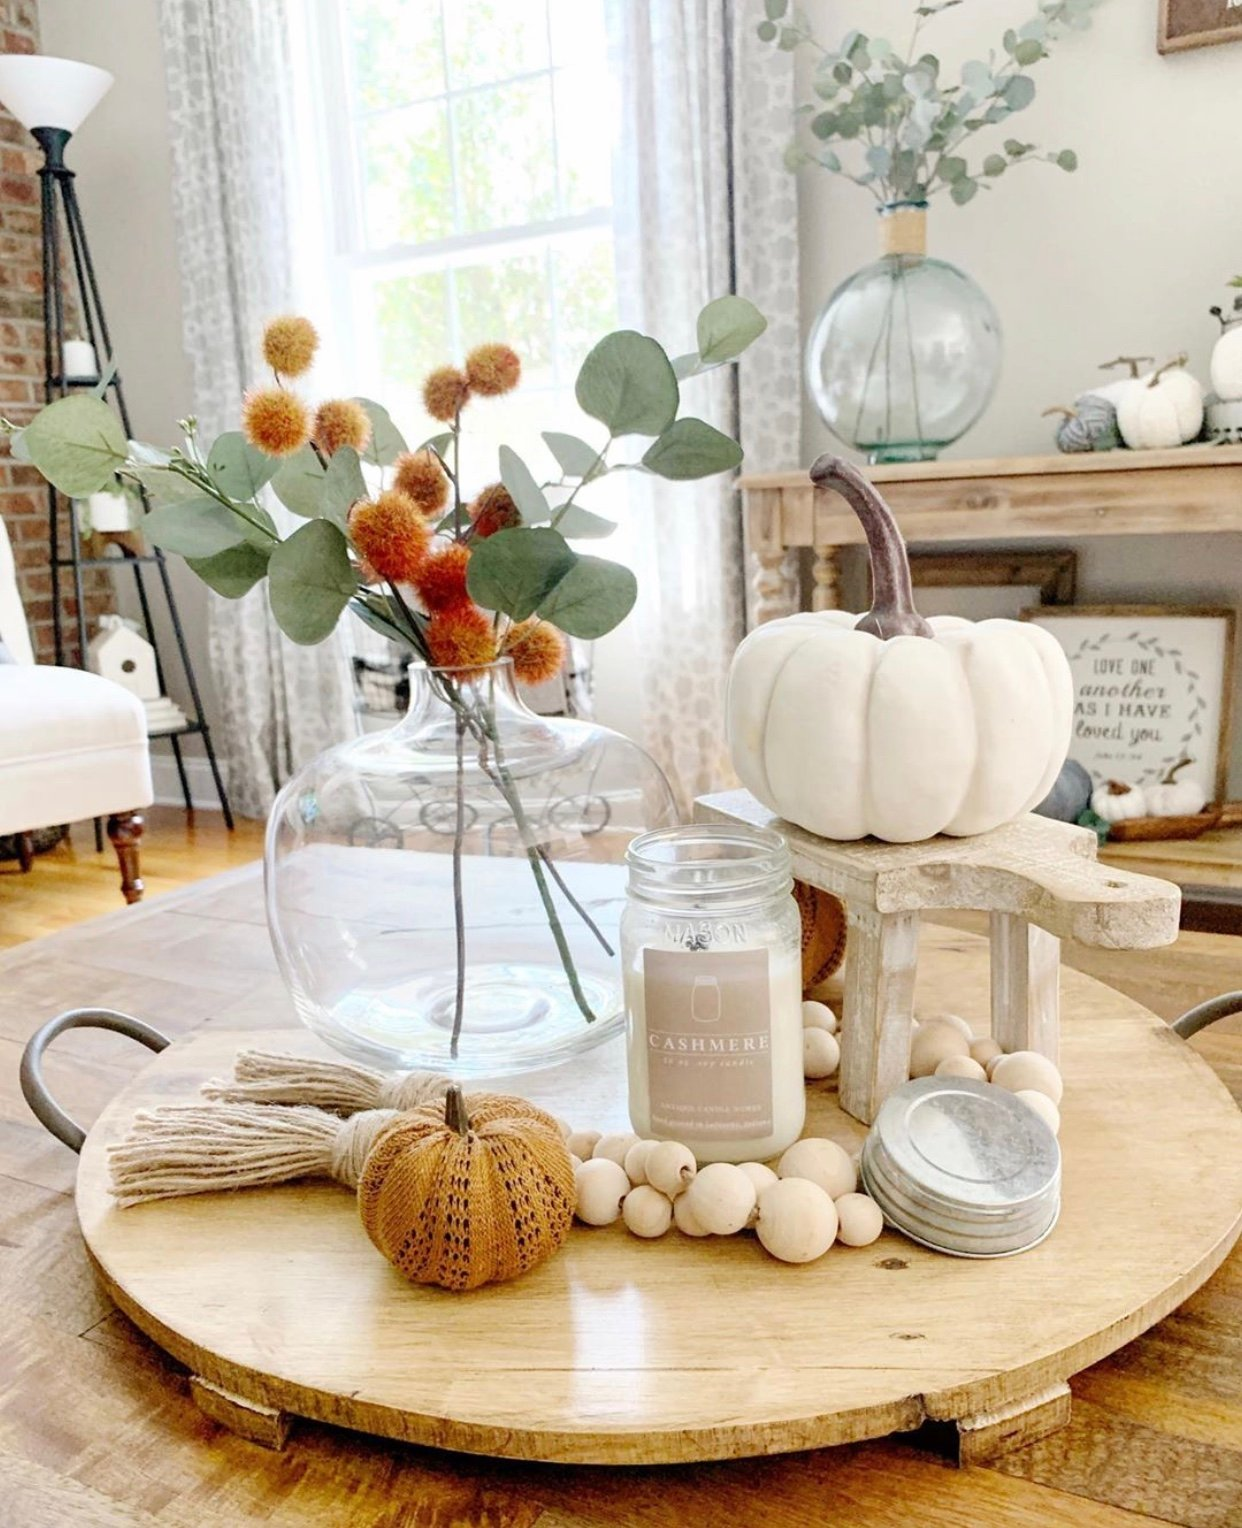 20 Gorgeous Fall Decor Ideas For Your Home   Chaylor & Mads